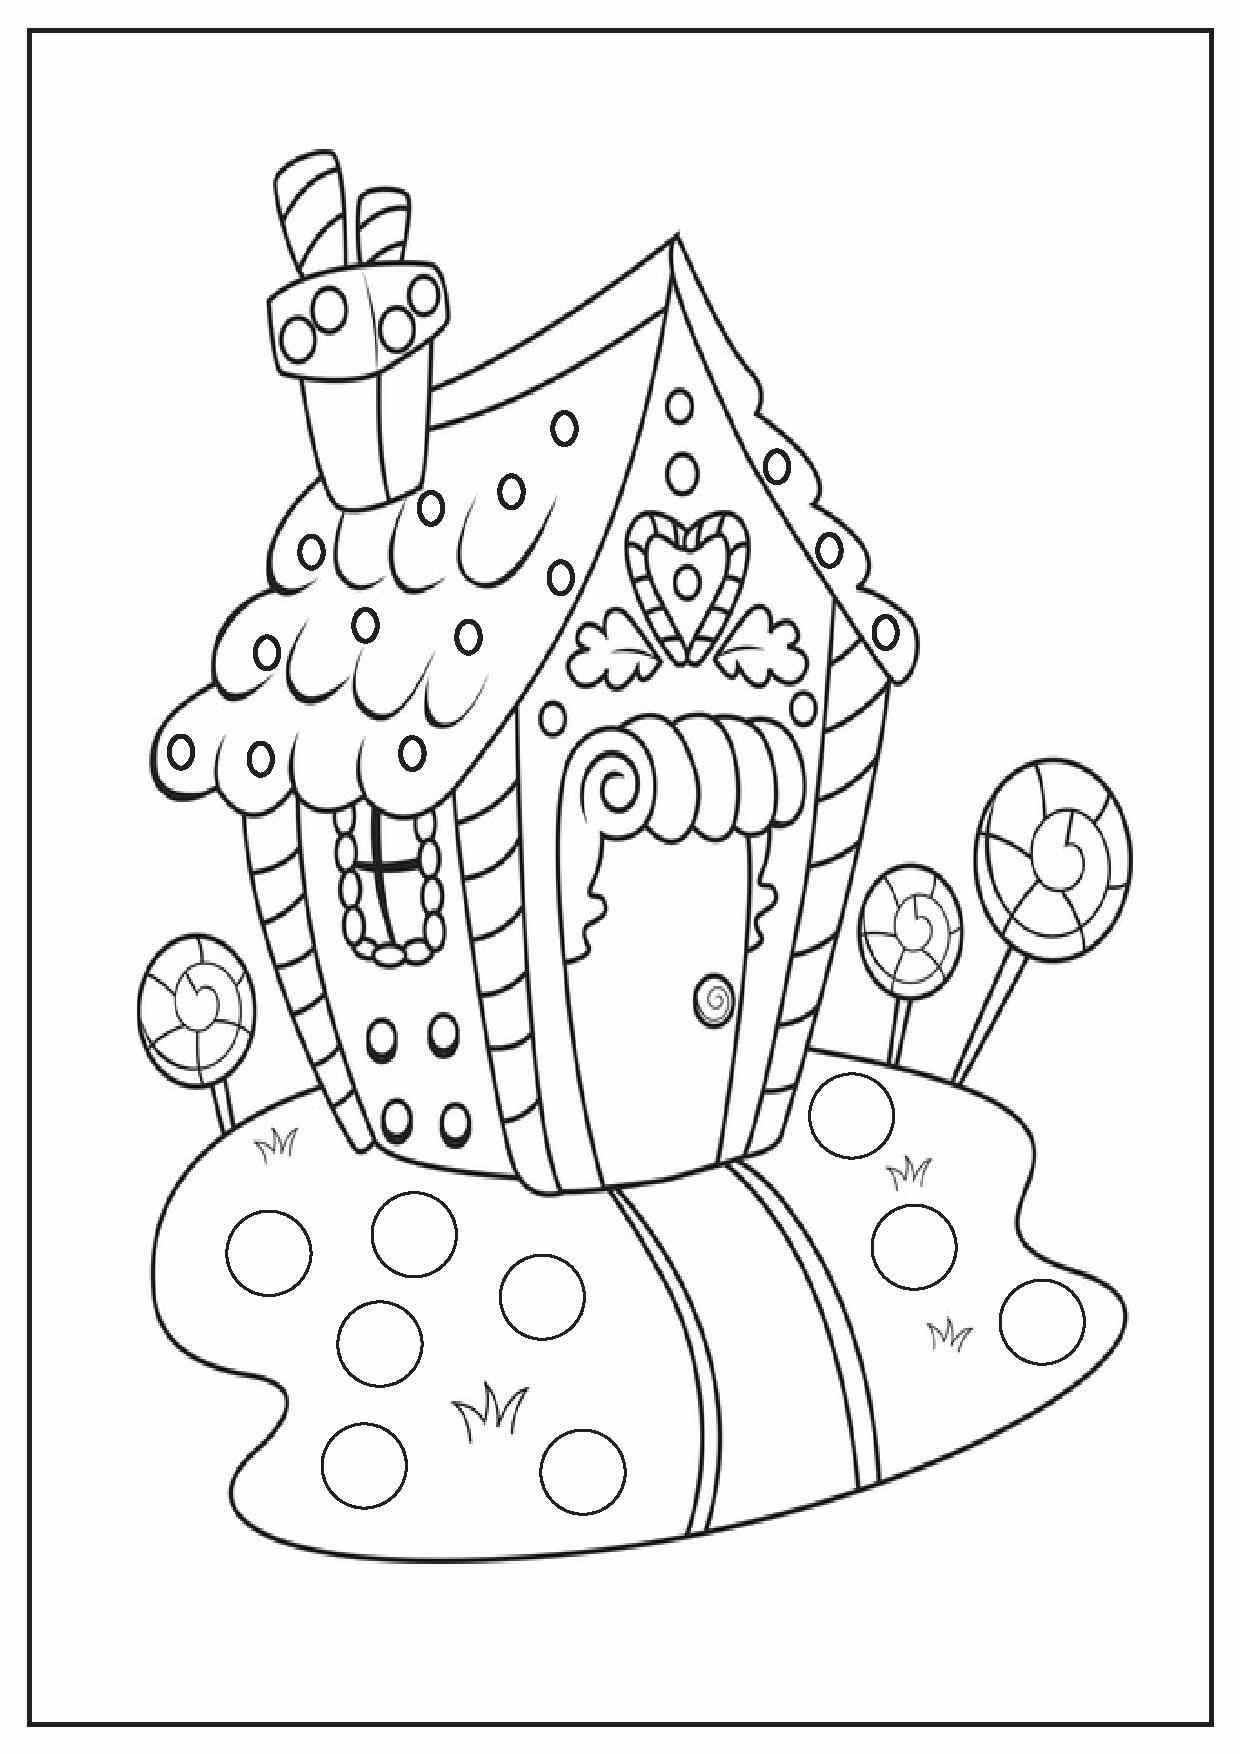 Kindergarten Coloring Sheets